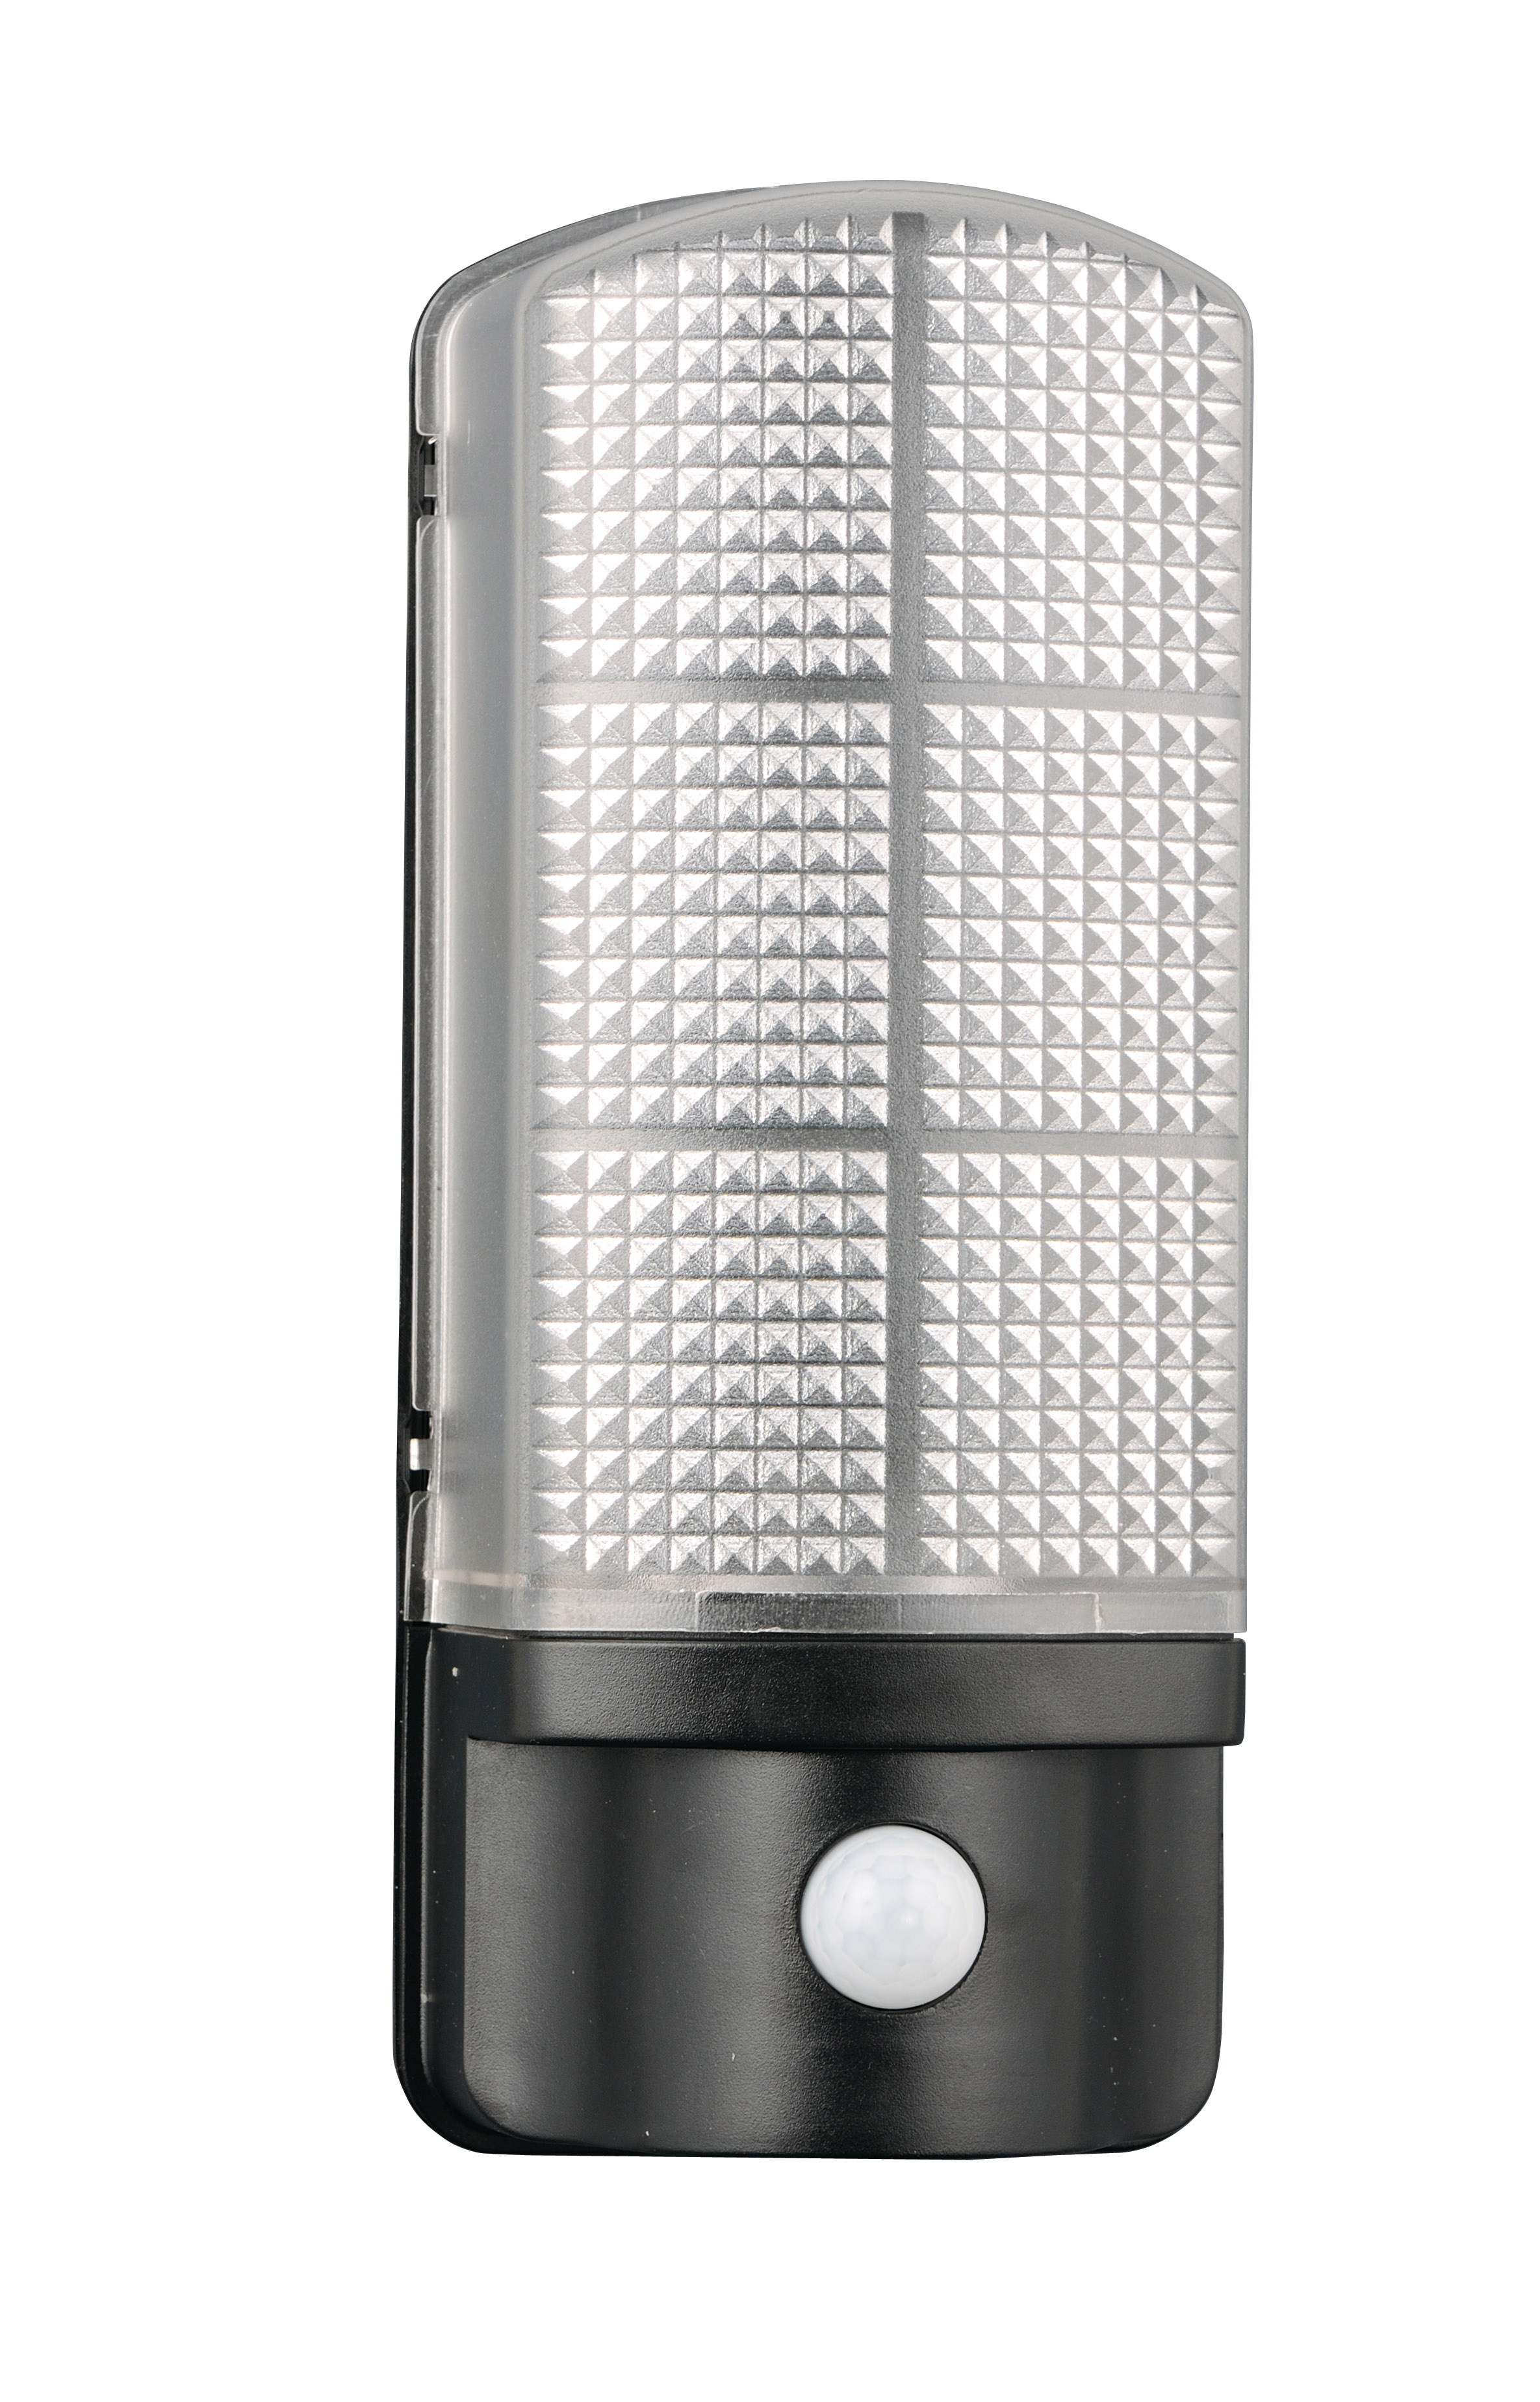 Epping led exterior wall light with day night photocell with pir leyton lighting for Exterior wall lights with photocell